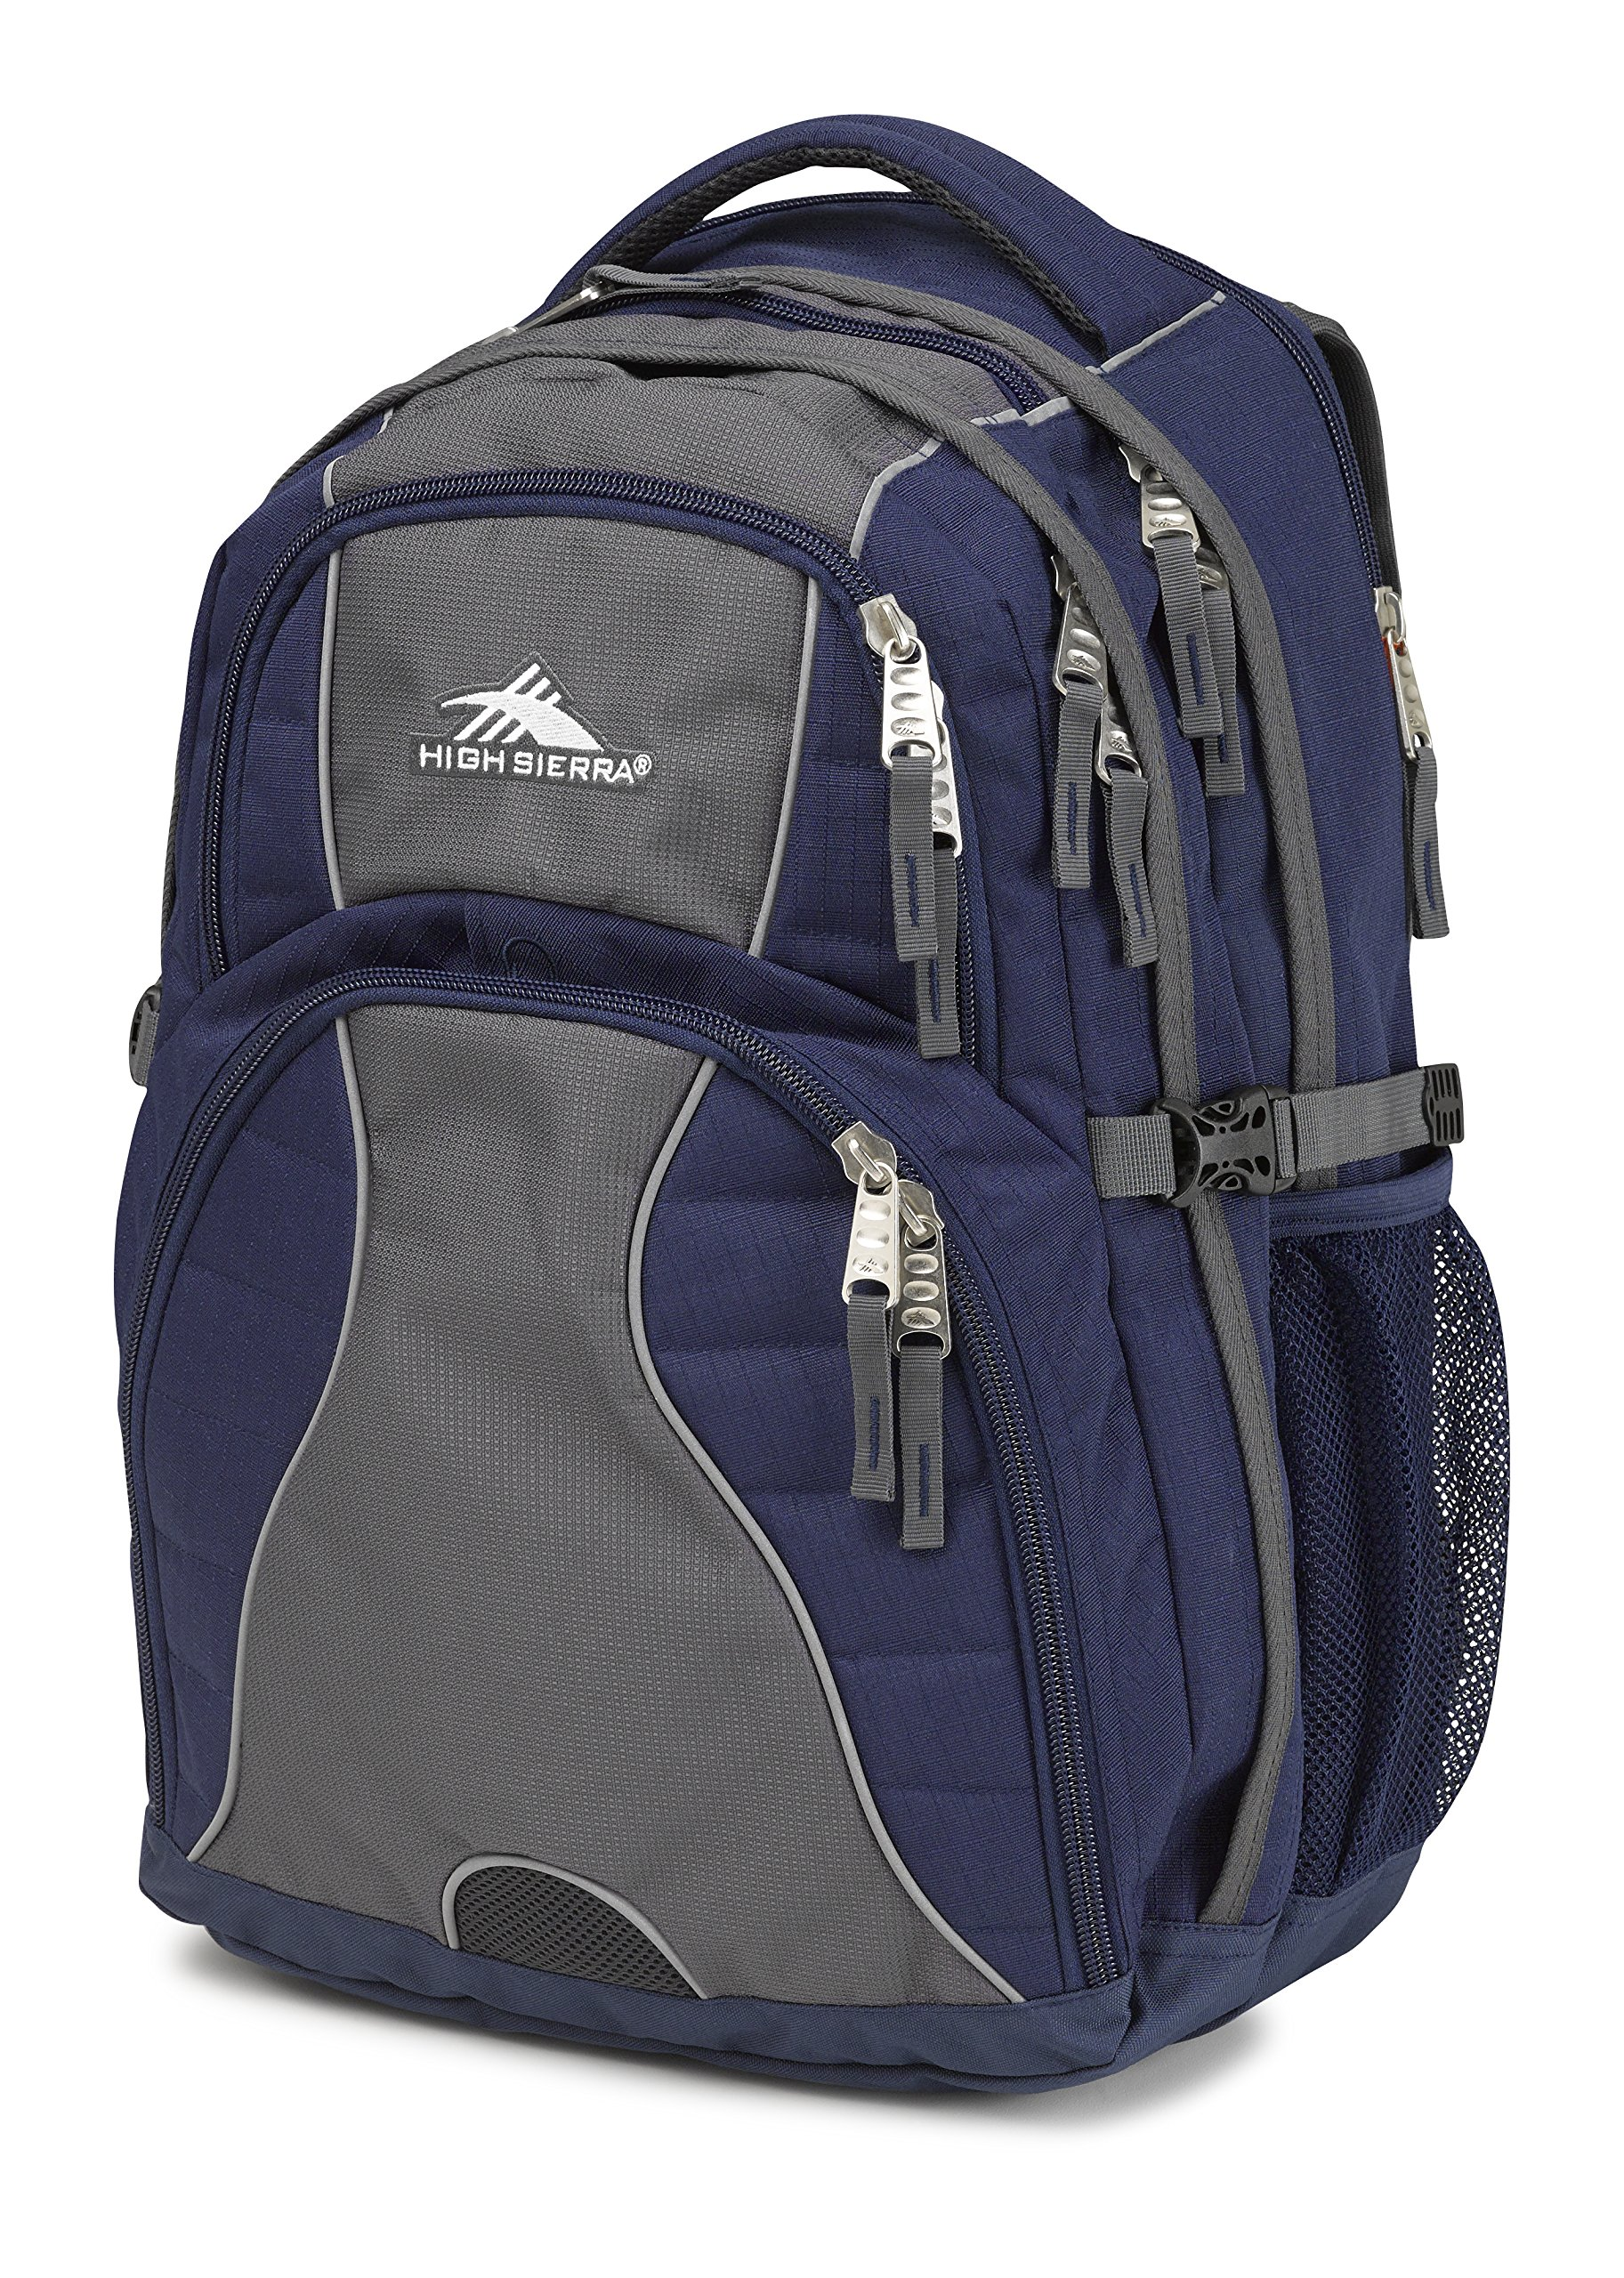 High Sierra Swerve Laptop Backpack, True Navy/Mercury